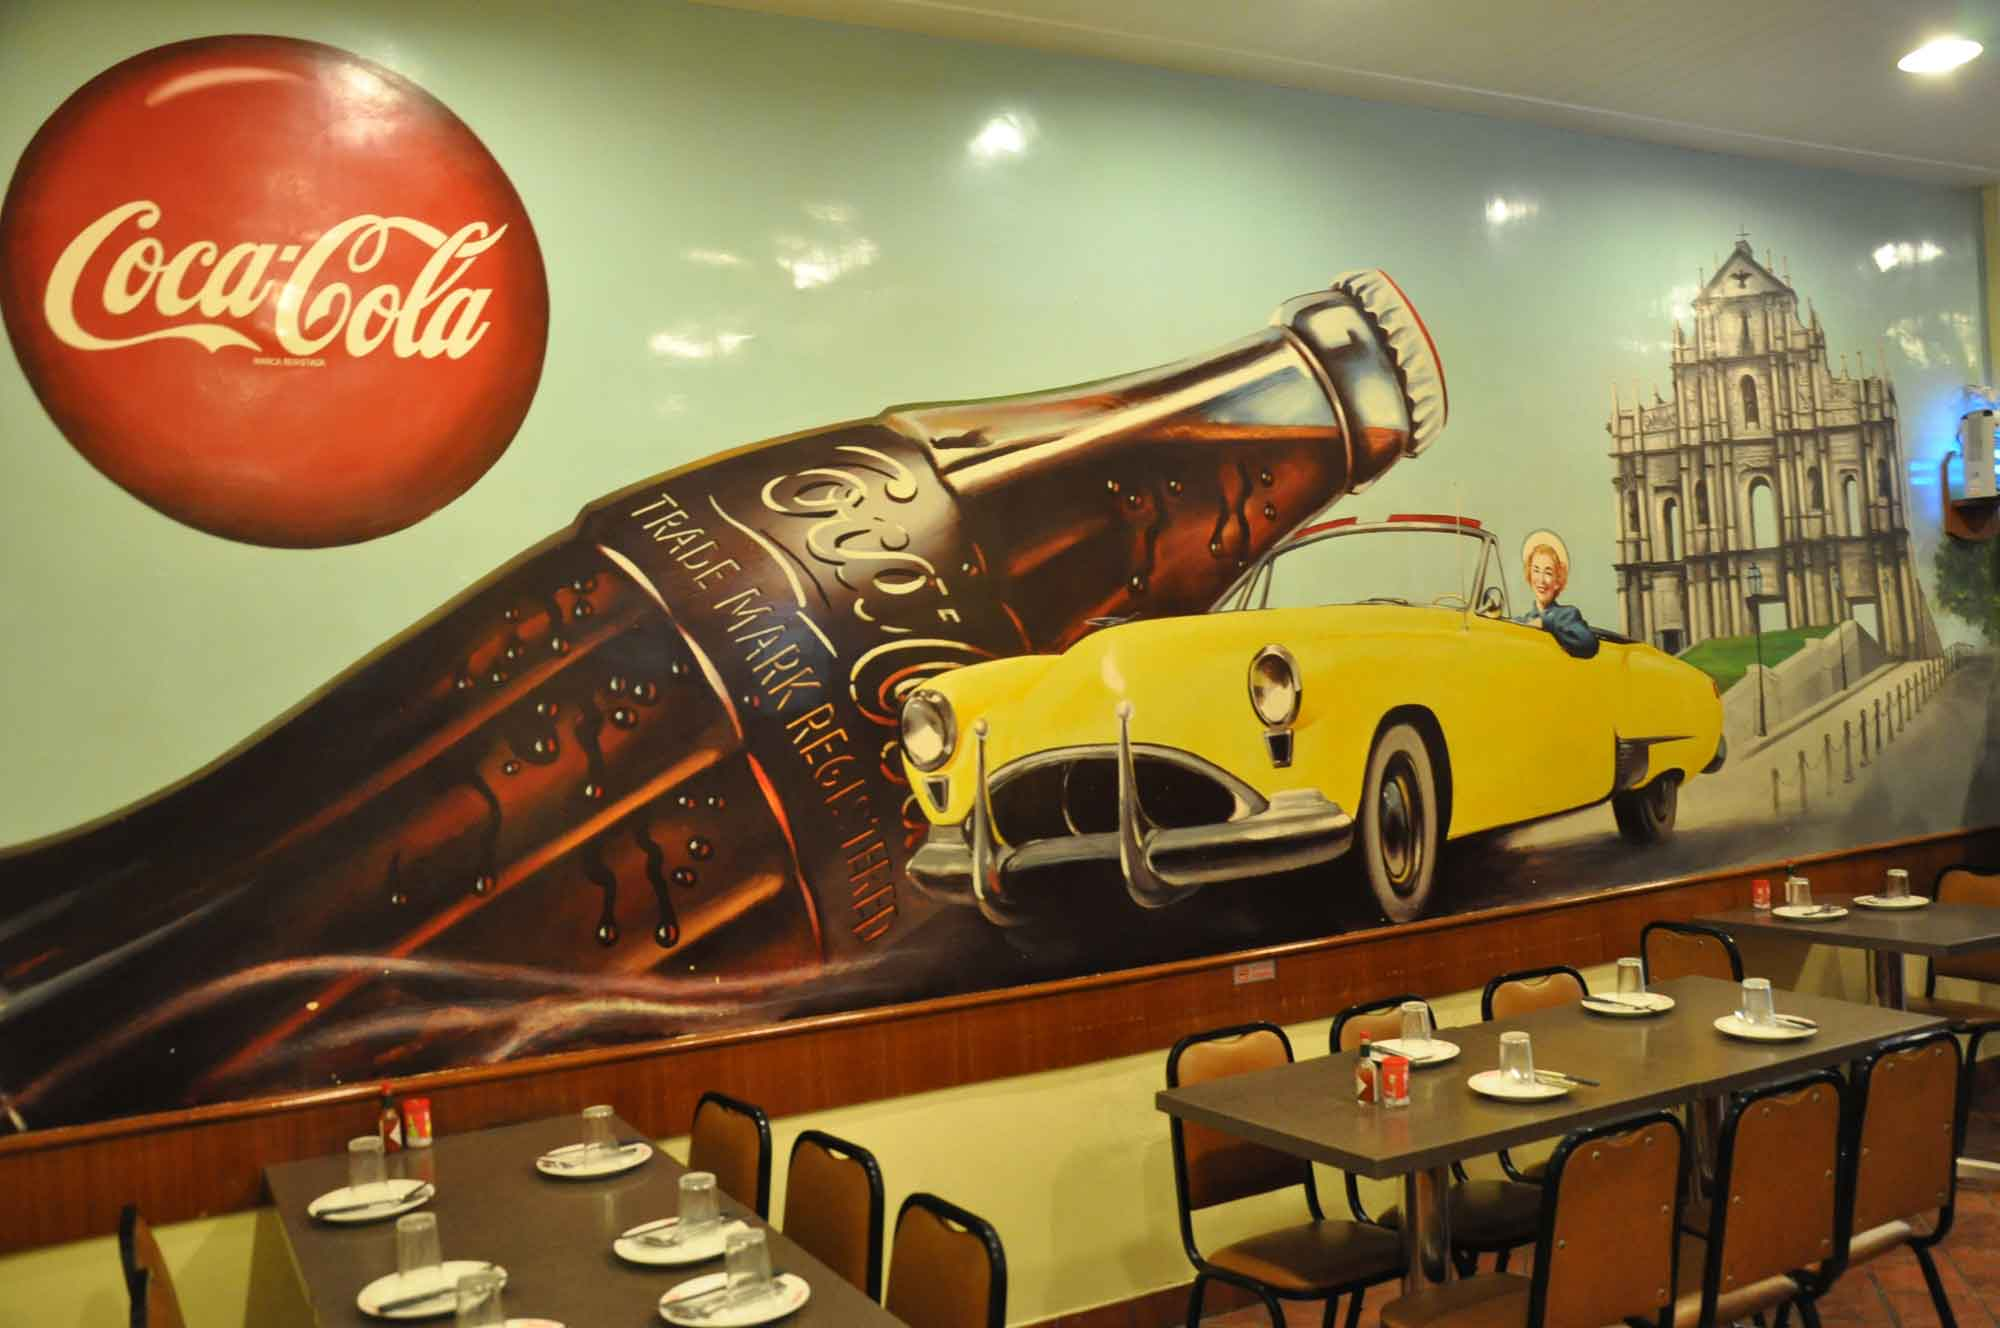 Man Lei Cheong Seng Coke wall painting